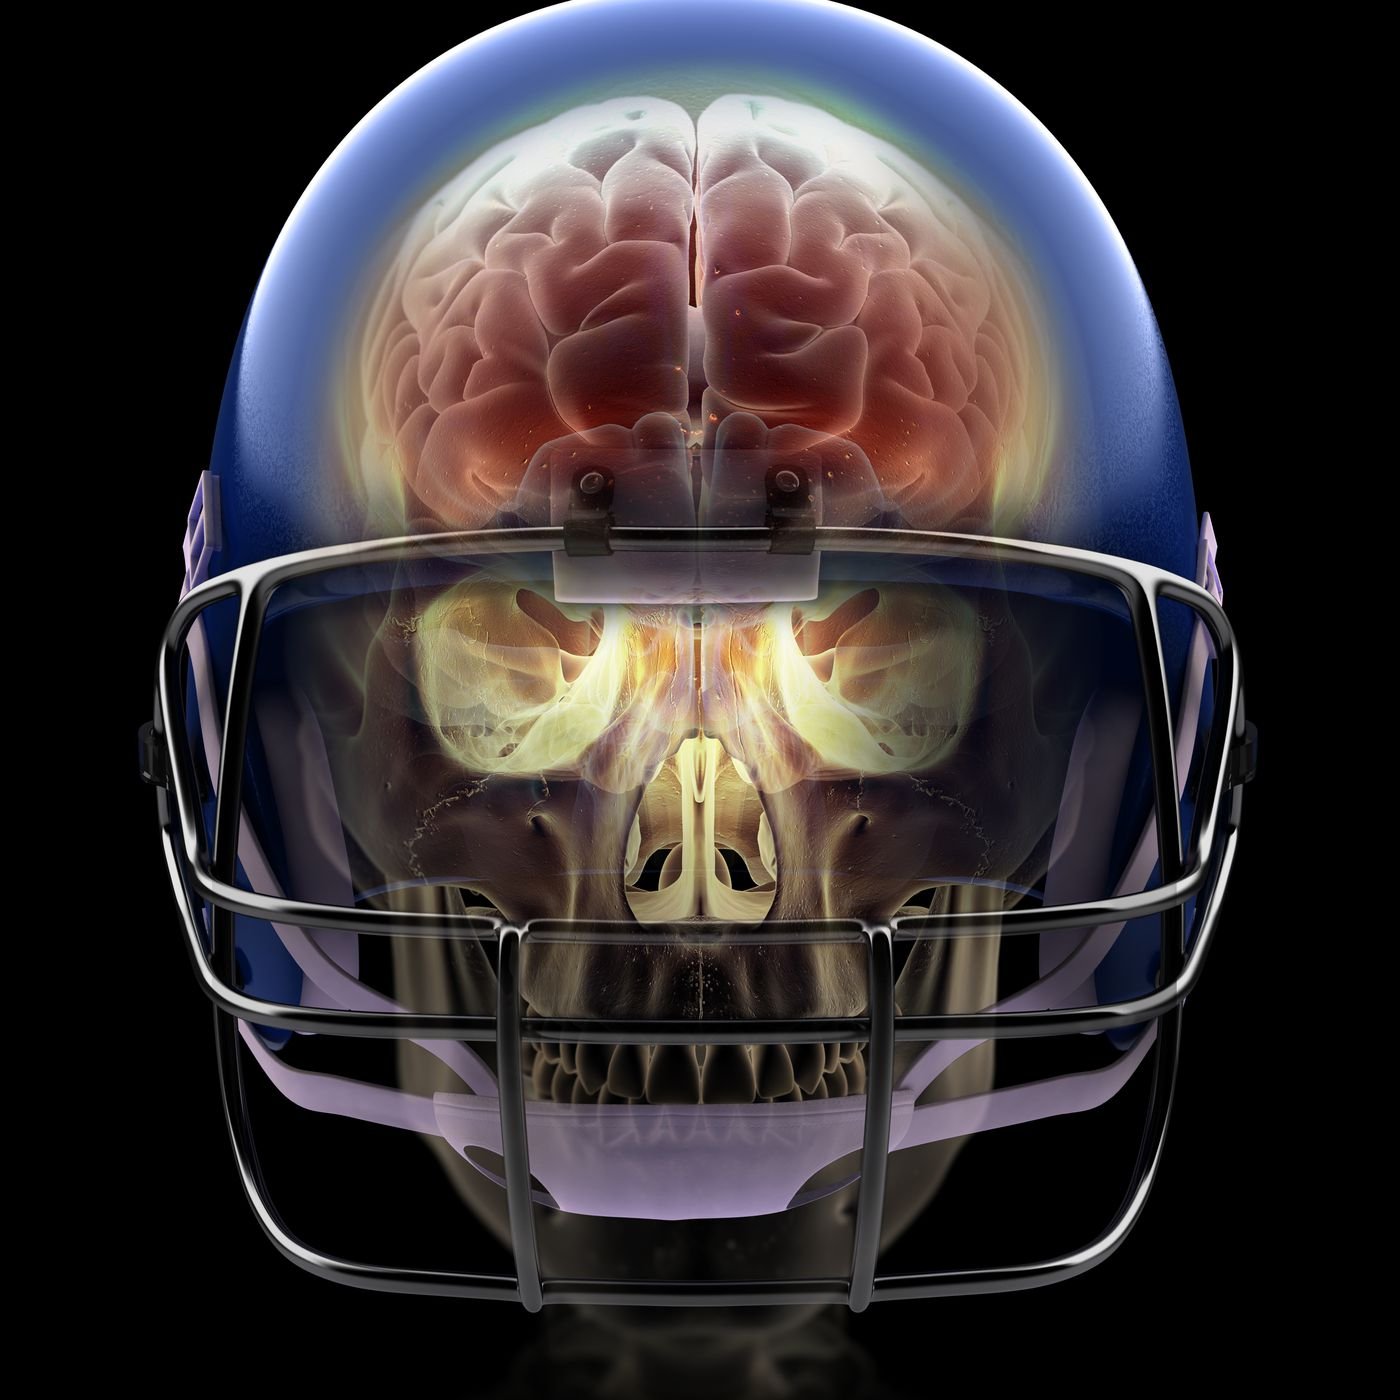 Brain Trauma Scientists Turn Their >> Super Bowl 2019 Football Concussions The Link Between Head